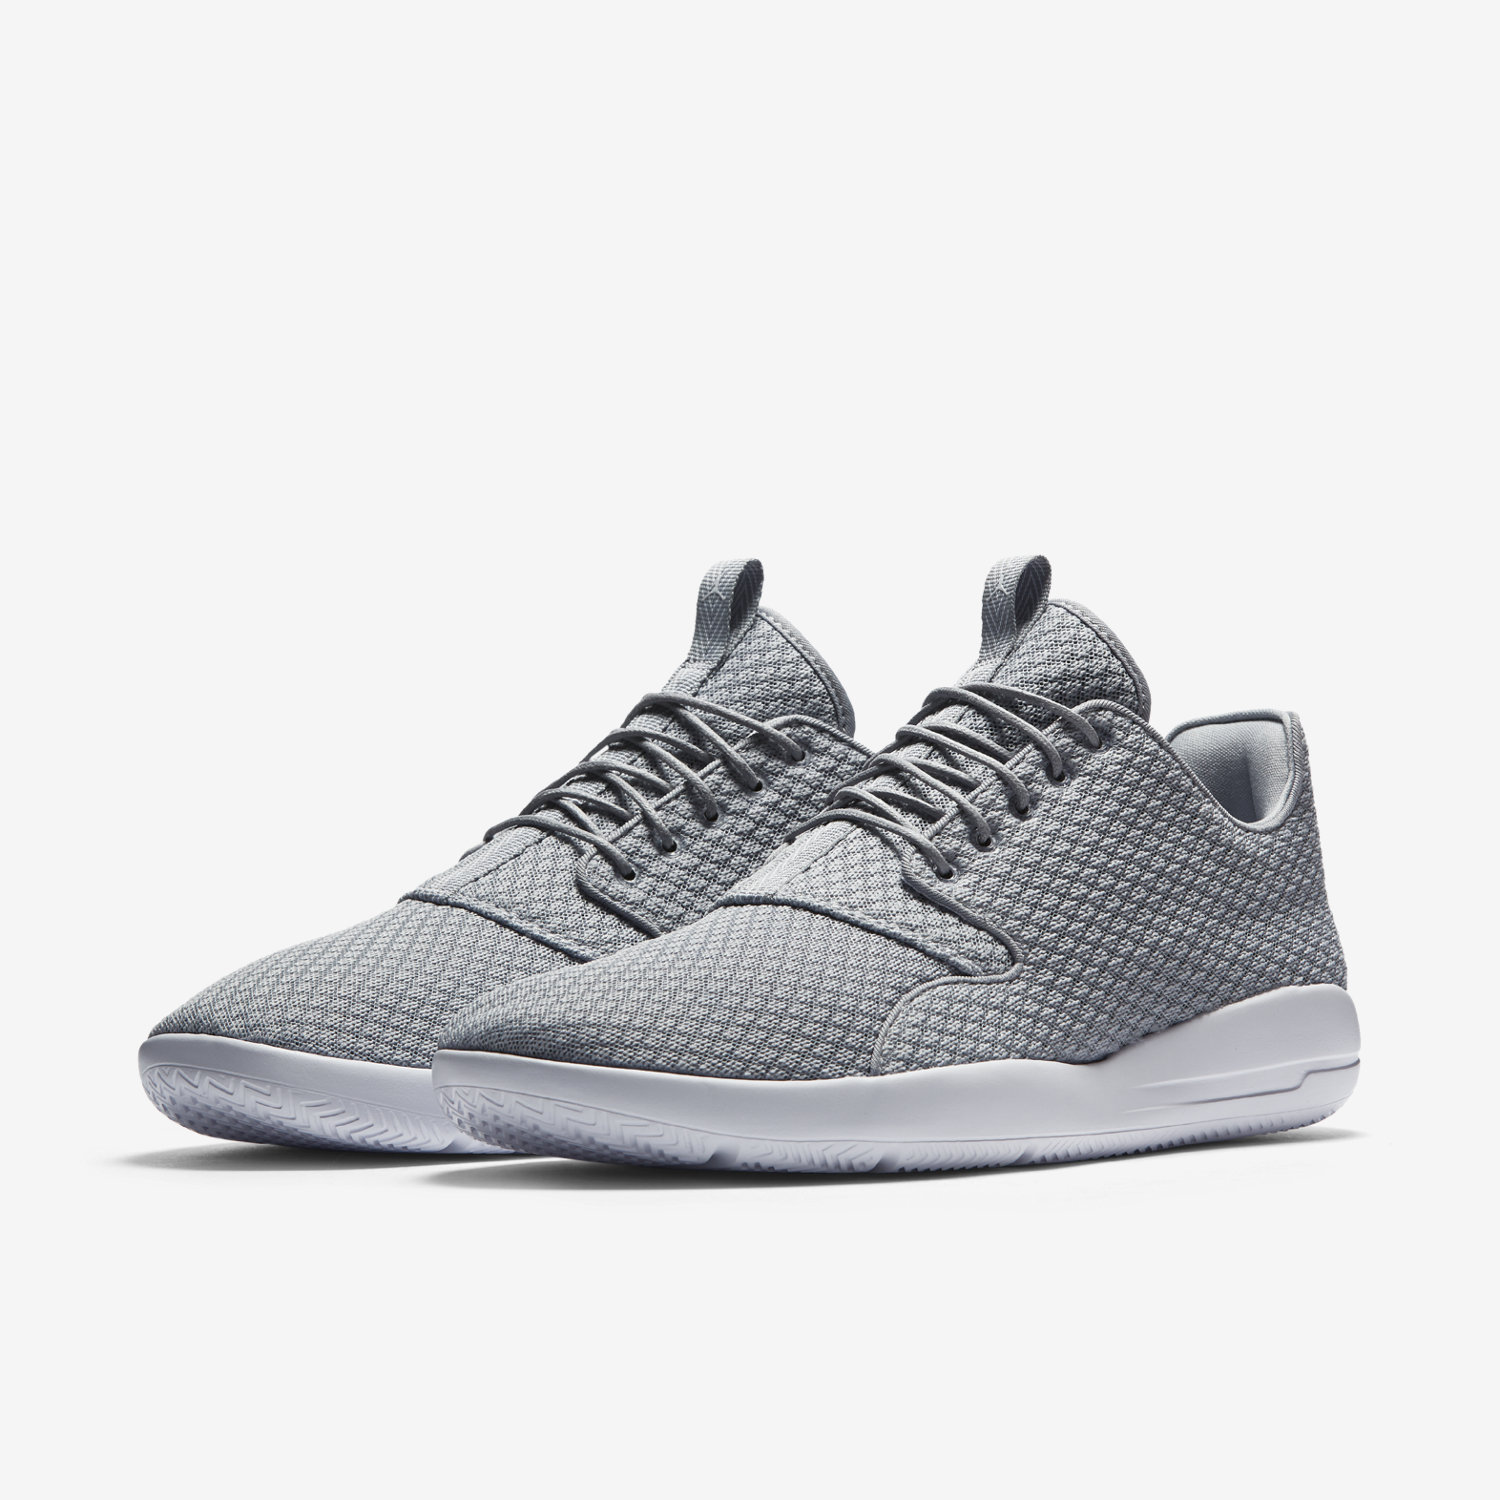 timeless design 1176b b2670 air jordan eclipse grey